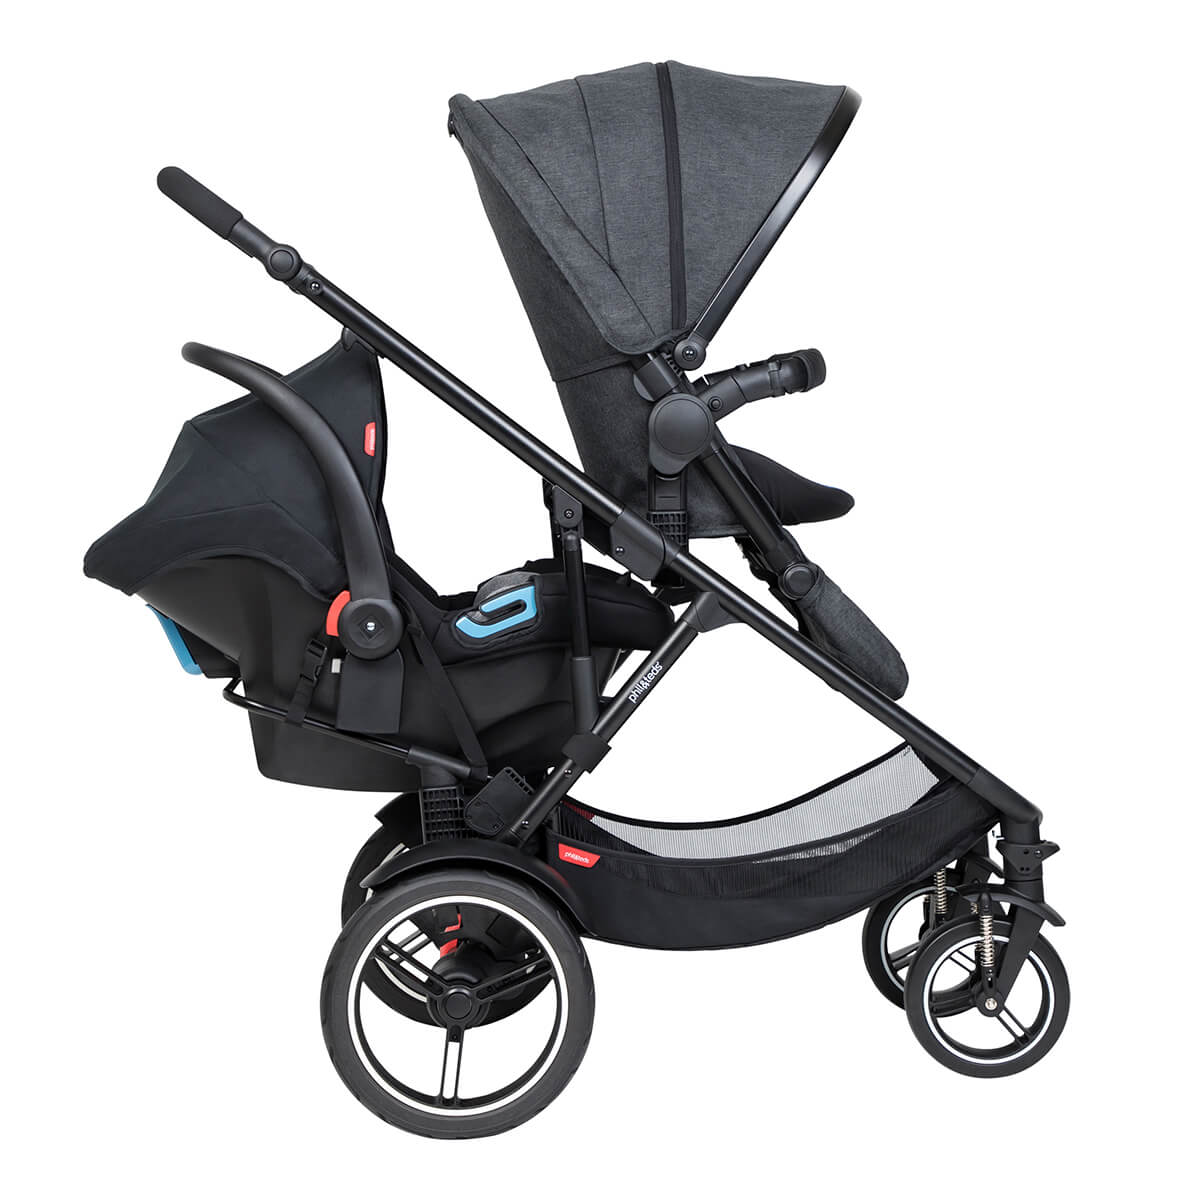 https://cdn.accentuate.io/4513464057952/19440099688632/philteds-voyager-buggy-in-forward-facing-mode-with-travel-system-in-the-rear-v1626486728453.jpg?1200x1200